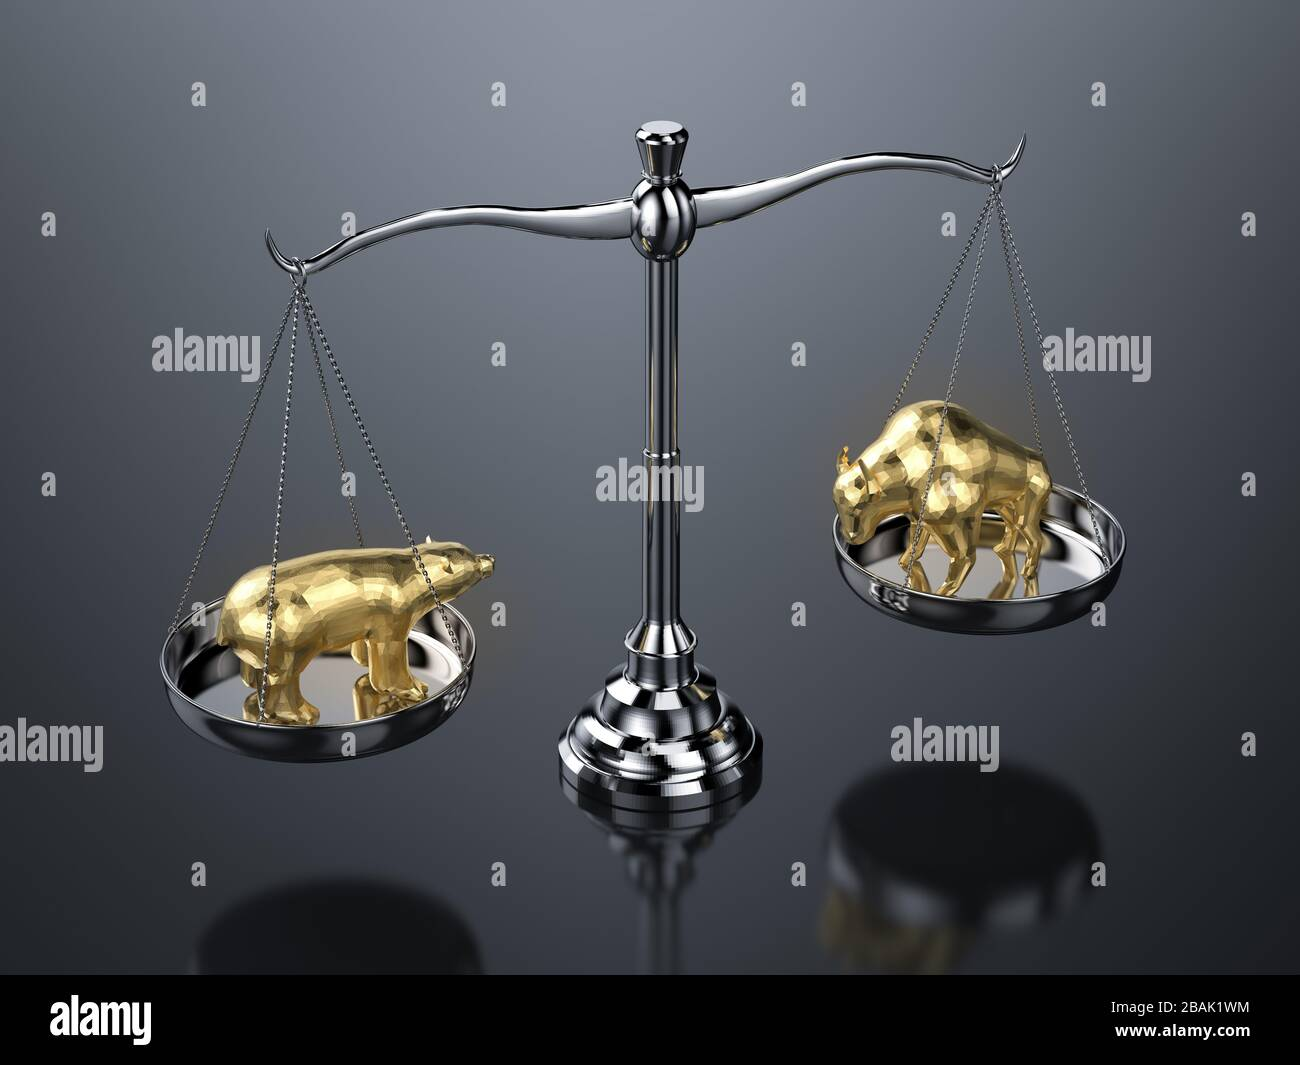 Bull and bear economy concept with 3d rendering bull and bear on scale weight Stock Photo